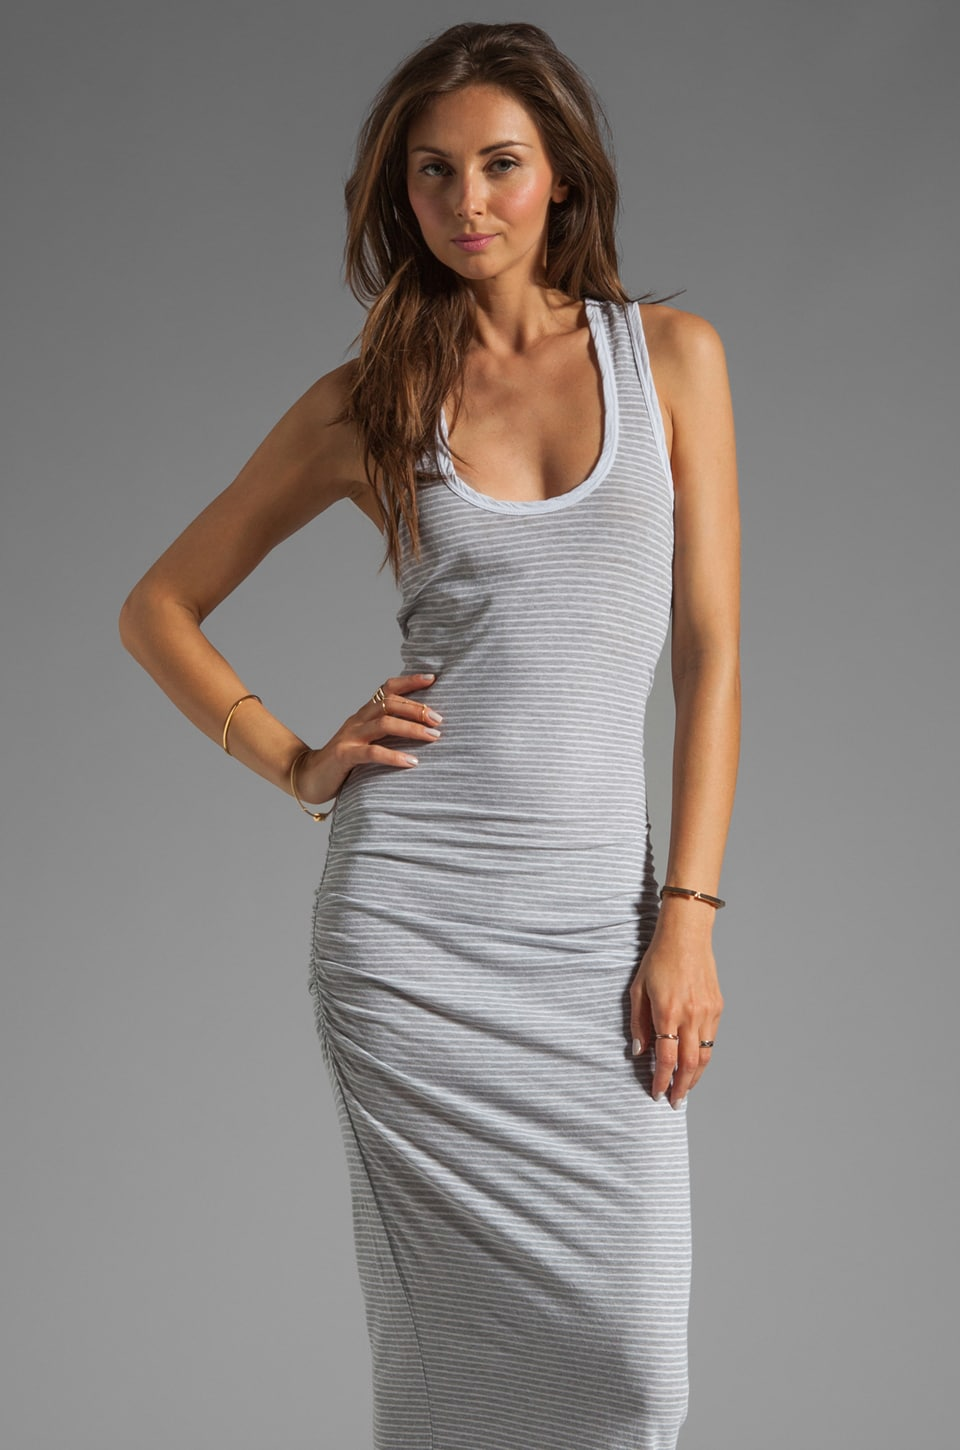 James Perse Stripe Tank Dress in Heather Grey/White